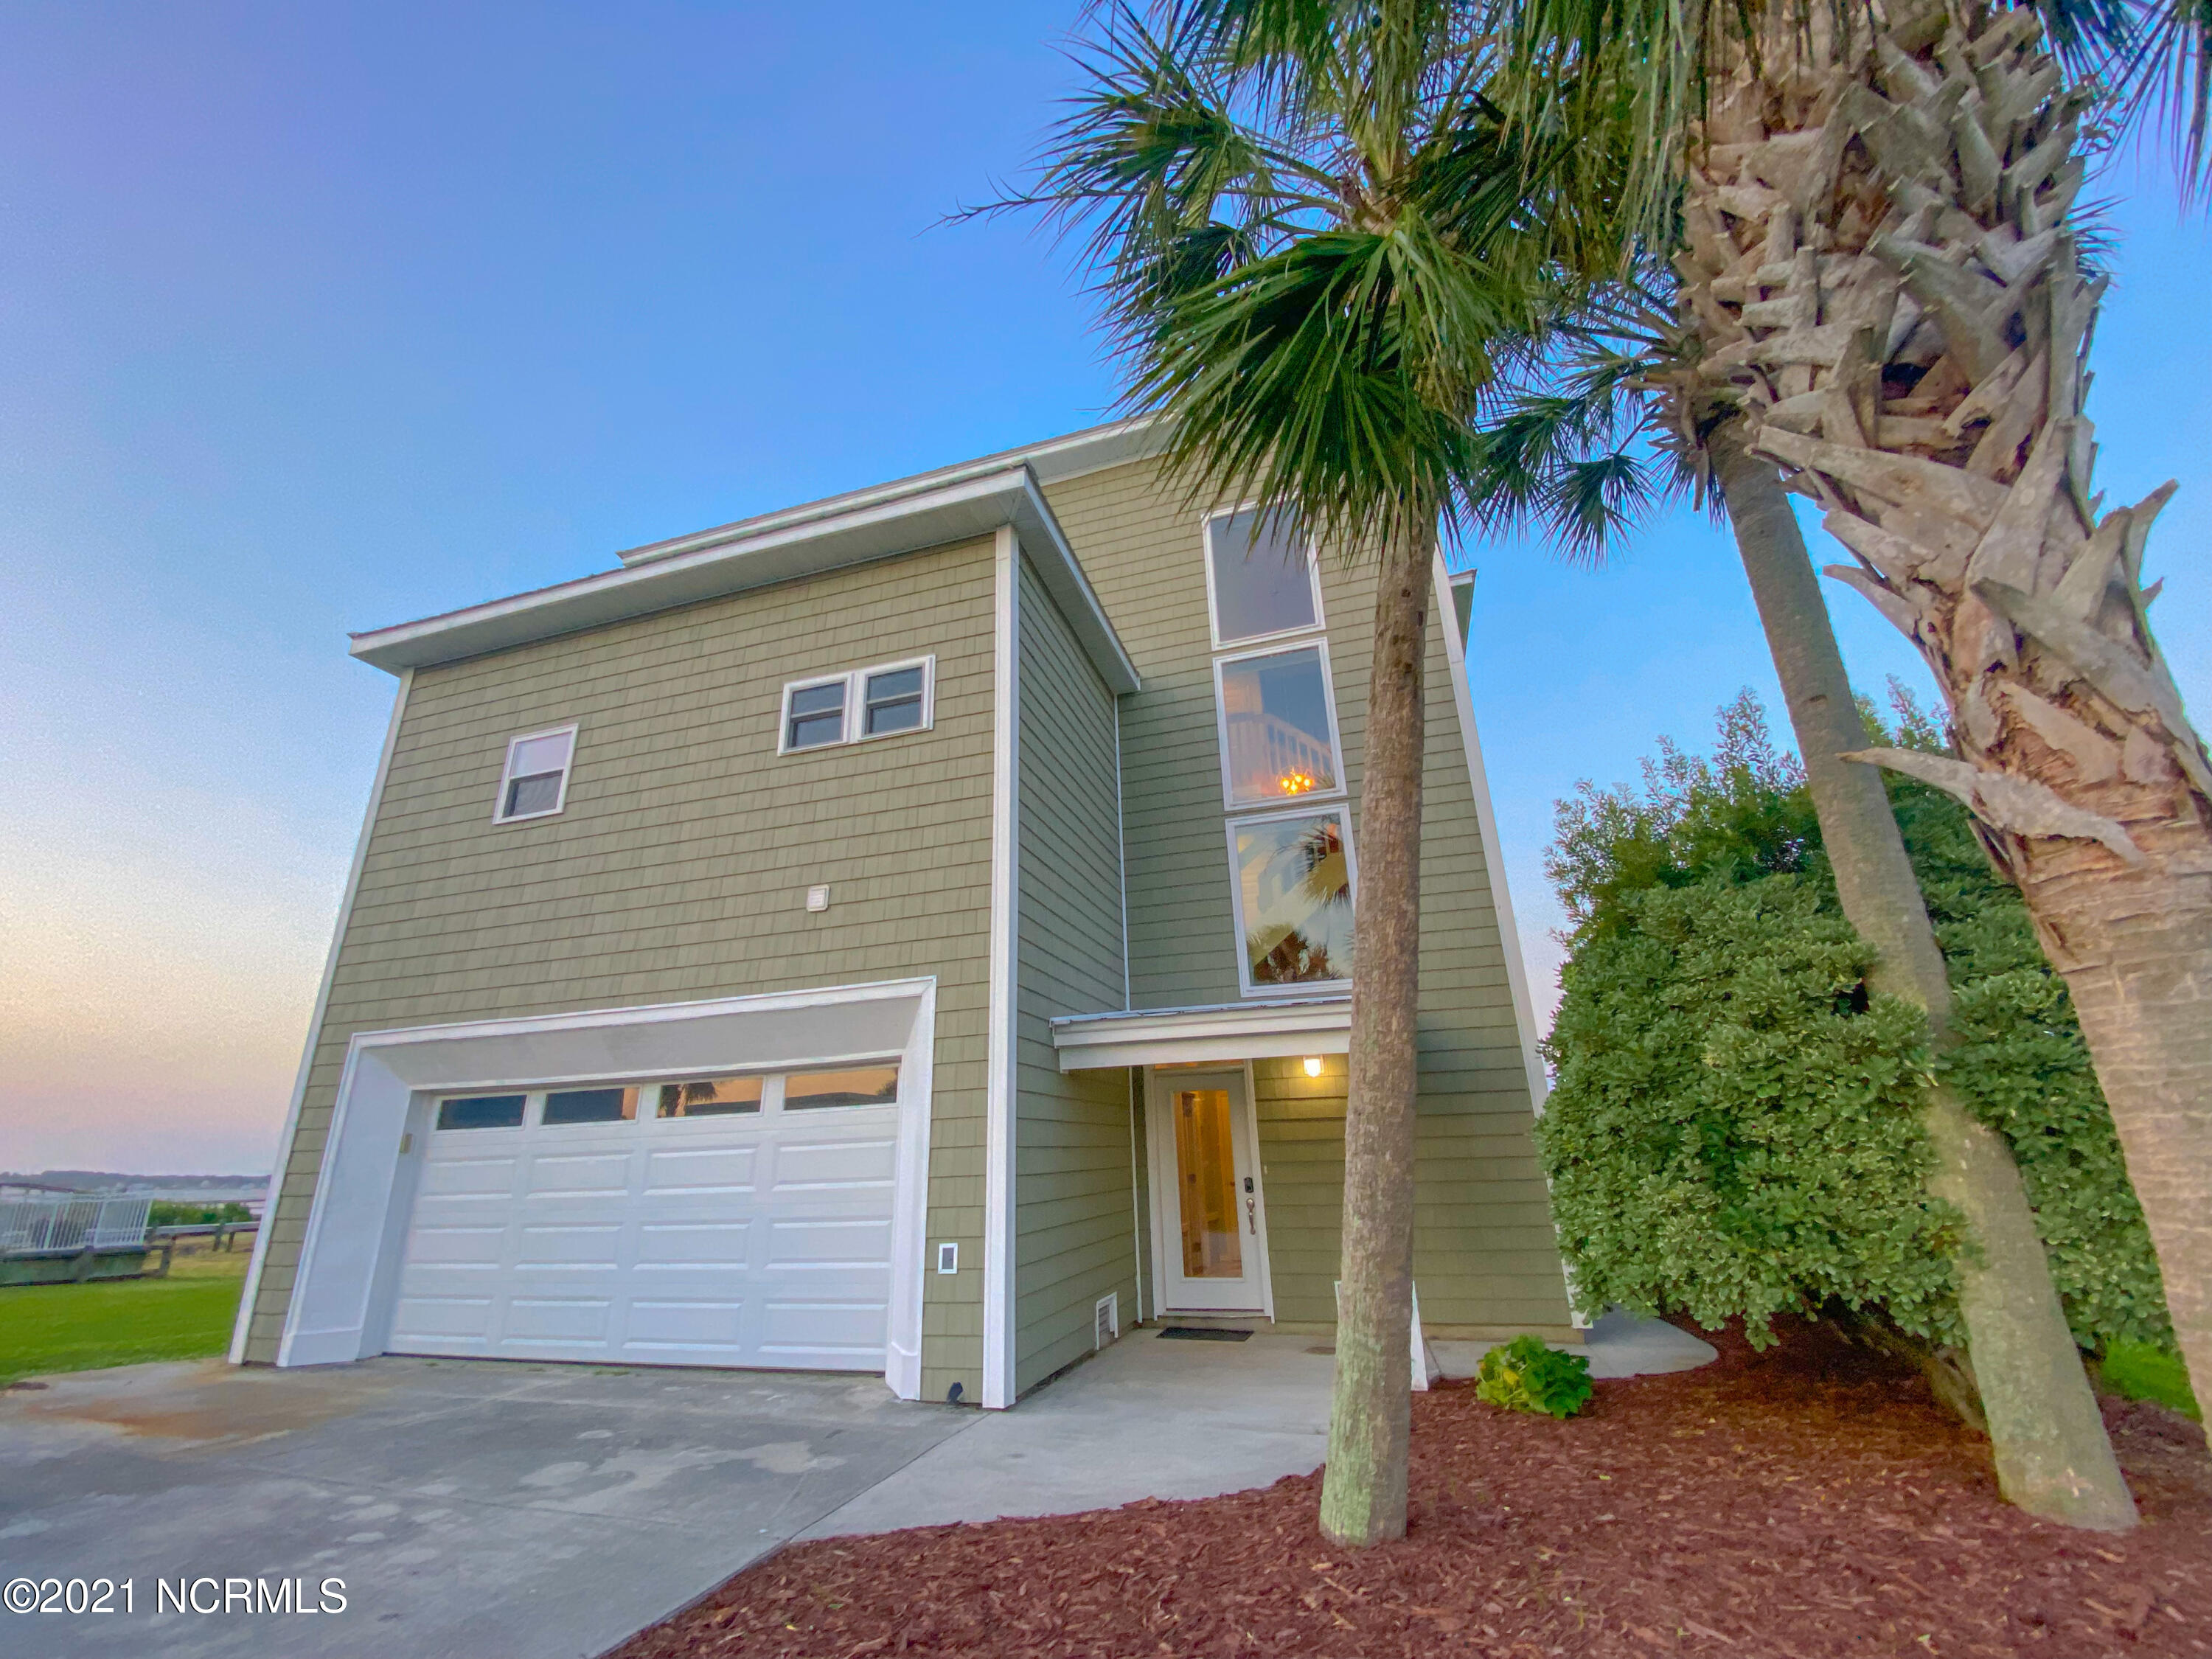 If you are looking for true architectural beauty right on the water, look no further! This home sits in the quiet waterfront community of Pelican Point. With breathtaking water views from every area of this home, you are sure to relax and enjoy life. As you enter the home you are greeted with a 3 story atrium style foyer with cascading stone waterfall! From here you can go to the back decks through what could be another living space in the fully finished basement area, including two rooms, large doors and windows, and a full bath (perfect space for a mini apartment, game room, etc). Back at the entry foyer, take the elevator up or ascend the modern open staircase to the main living area. The 3 story waterfall and exquisite full windows with beautiful sunset views on your way up will take your breathe away. Upon your arrival to the main level, you are greeted with a large open living area. This space includes dining, living, and gourmet kitchen! New addition kitchen built in 2019 with all new appliances is equipped for a chef with a Verona gas stove, remote controlled hood, double oven, convection oven, wine fridge, wine racks, over sized refrigerator, granite, custom soft close cabinets, huge butler's pantry, coffee/wet bar w/ ice maker, and storage for days. Also on this level is a guest 1/2 bath, newly added sunroom, and the Master bedroom with jacuzzi tub, walk in shower, his & her vanity with makeup counter, large closet, and access to the back decks. Head upstairs to find 2 more bedrooms with views and lots of space overlooking the living area for a library, office, or sitting area. All this and what more could you ask for? Well, how about over 1400 sq ft of outdoor decks including a hot tub wired -potential enclosed area, a newly added flow through pier with covered boat dock, and a widow's walk to enjoy 360 degree water views. Soak up the sun with Atlantic Ocean views and breezes!Come see this one of a kind piece of PARADISE at a great price!